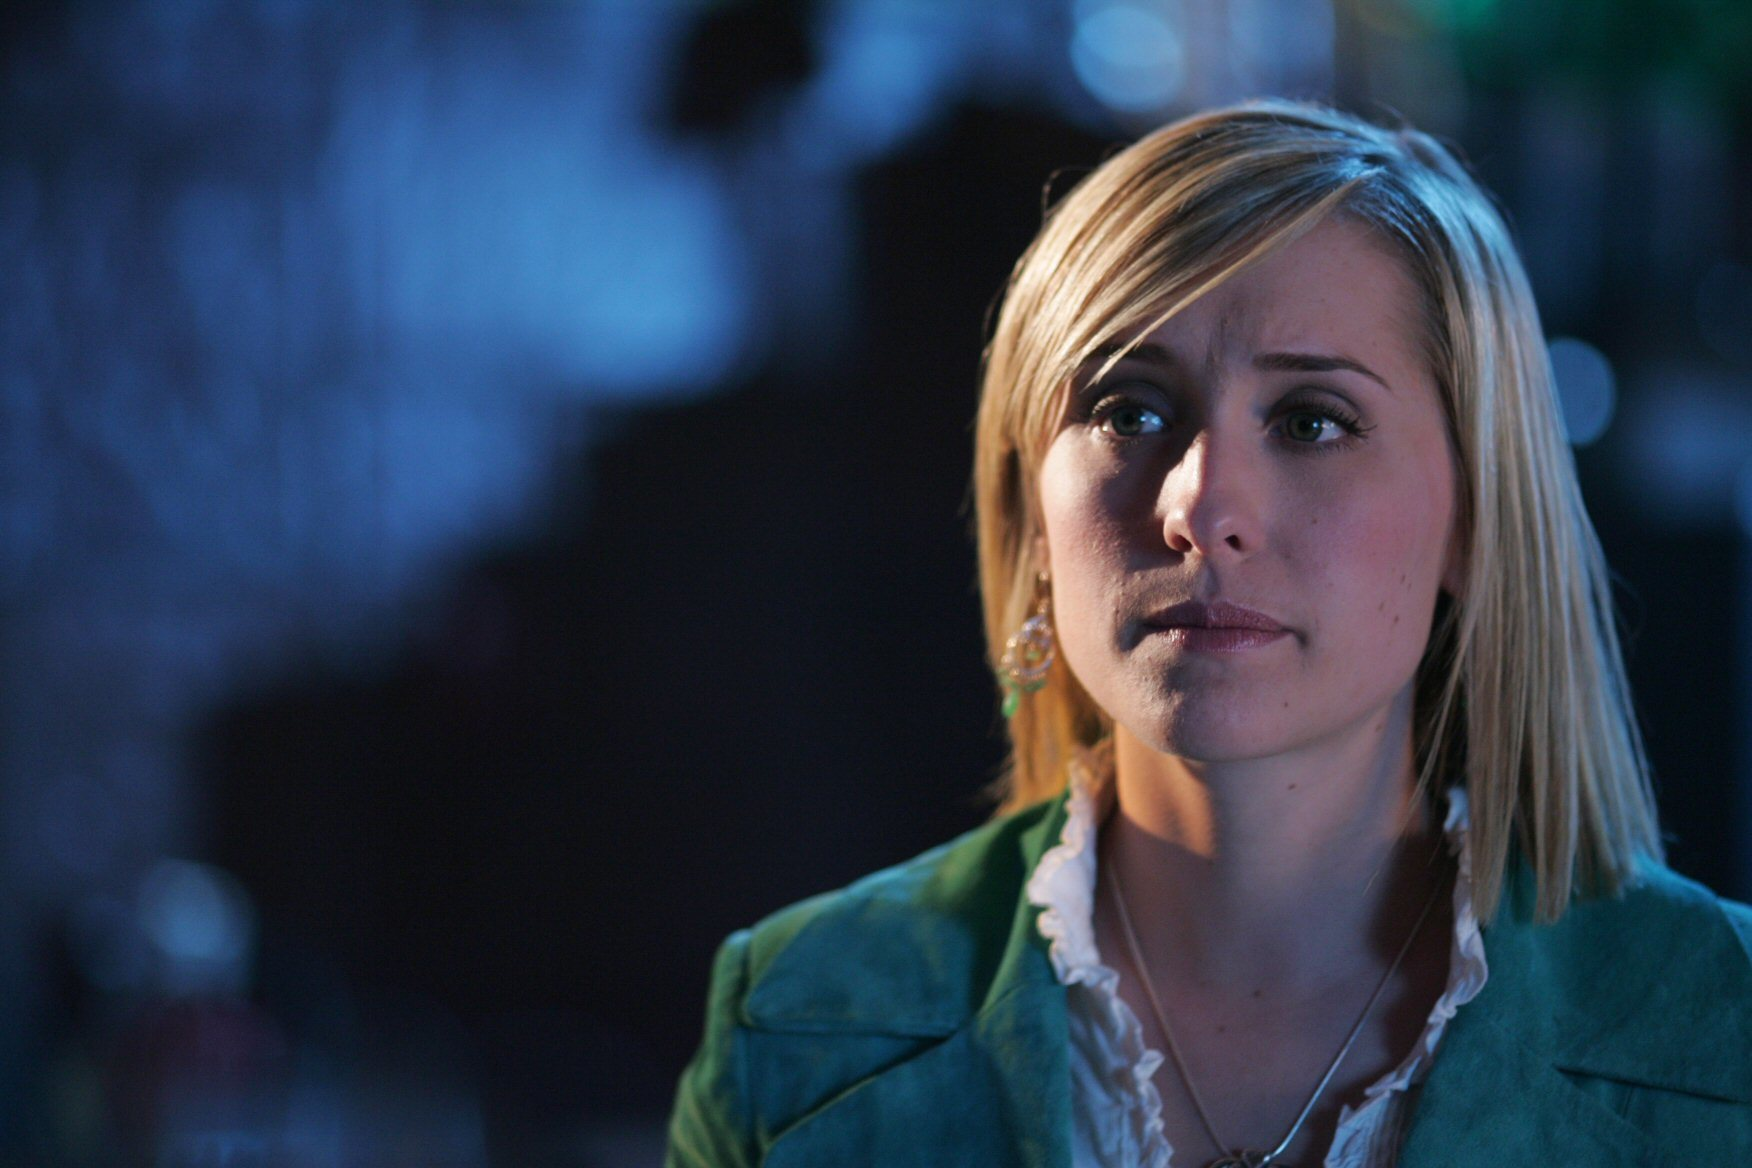 allison mack Smallville Celebrity HD Wallpaper